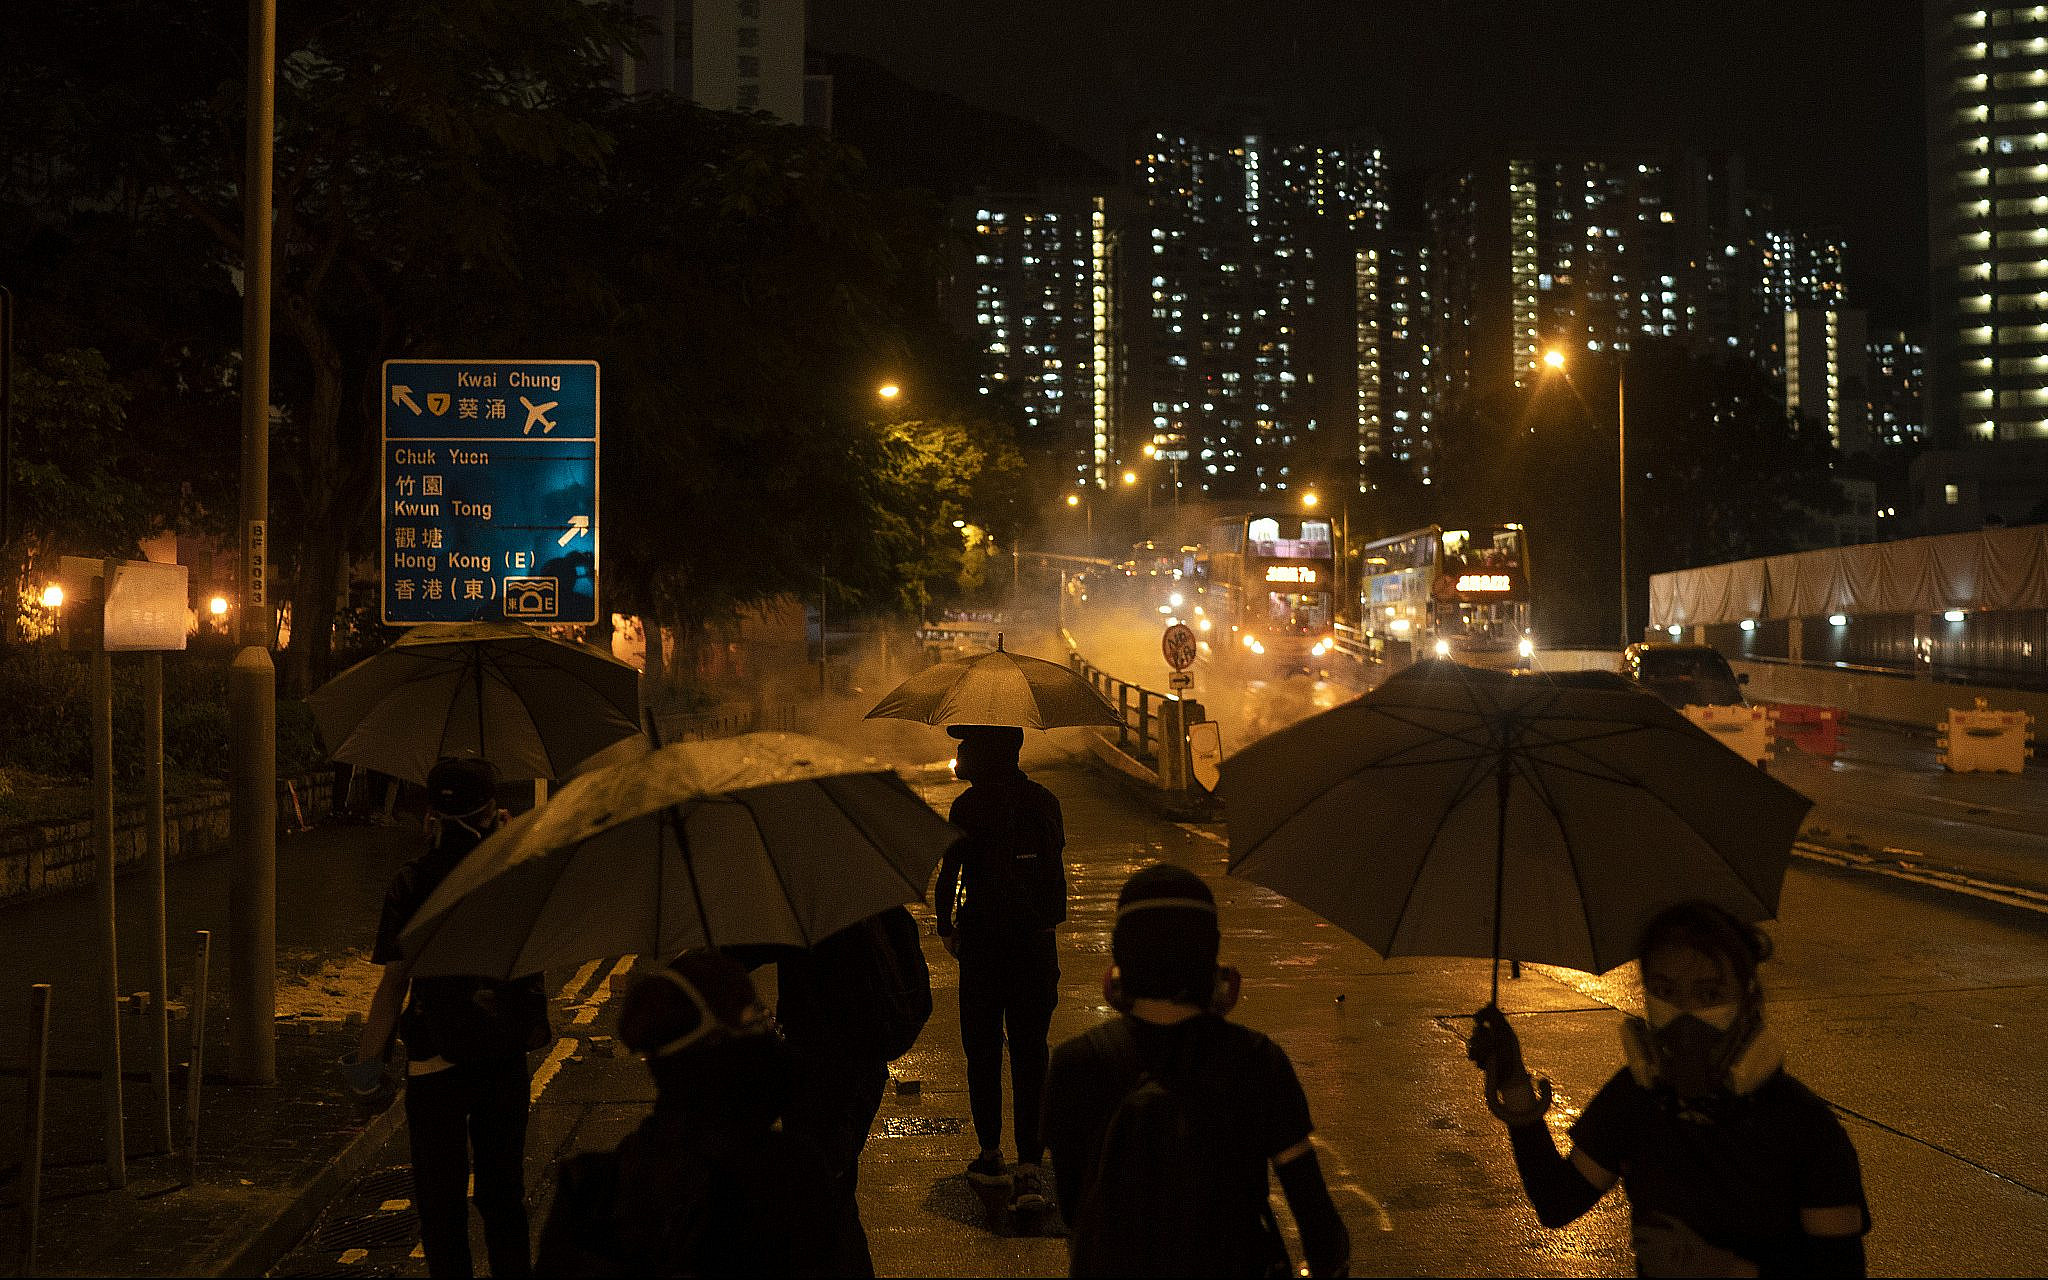 Protestors face police tear gas in Hong Kong